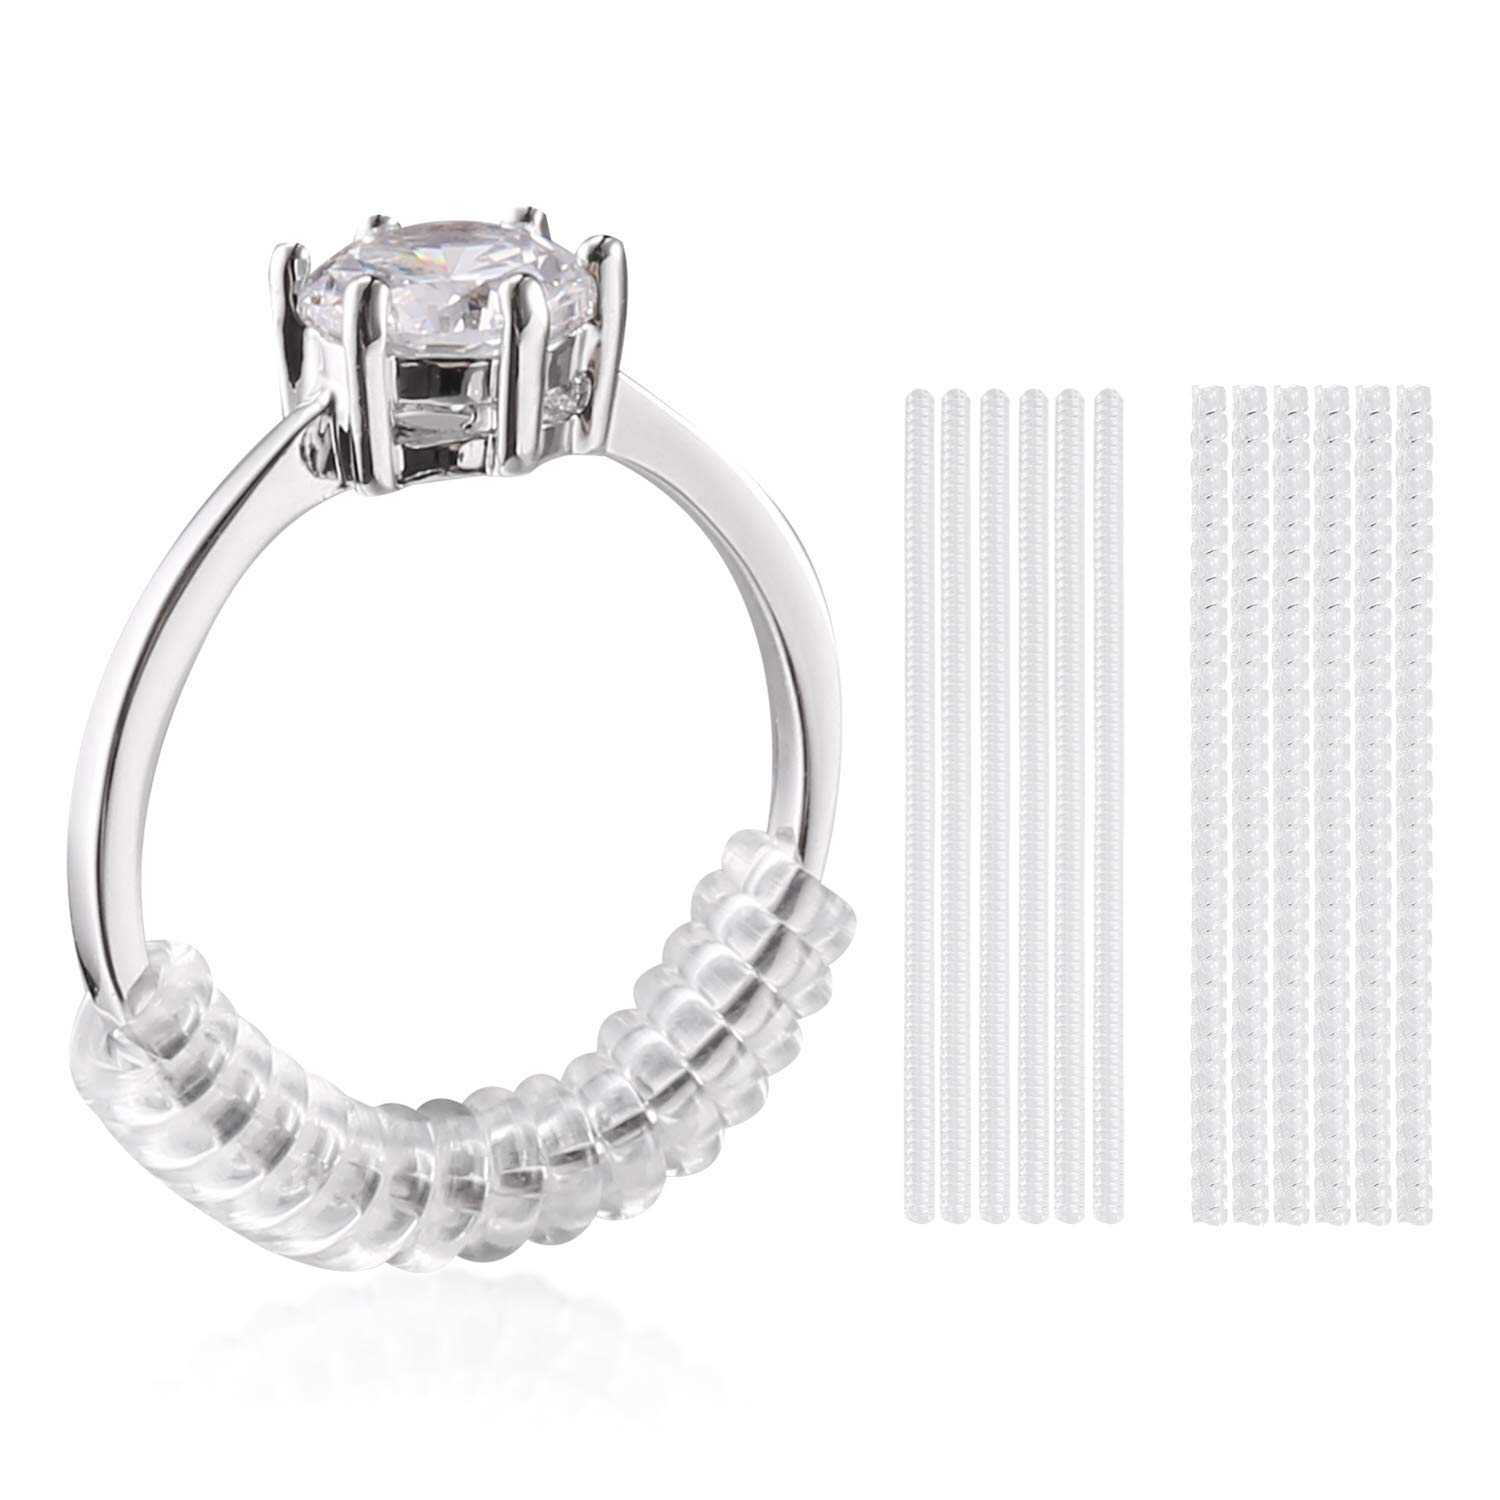 Get Quotations · Ring Size Adjuster For Loose Rings Guard With Sliver Polishing Cloth Set Of: Plastic Wedding Ring Spacer At Websimilar.org